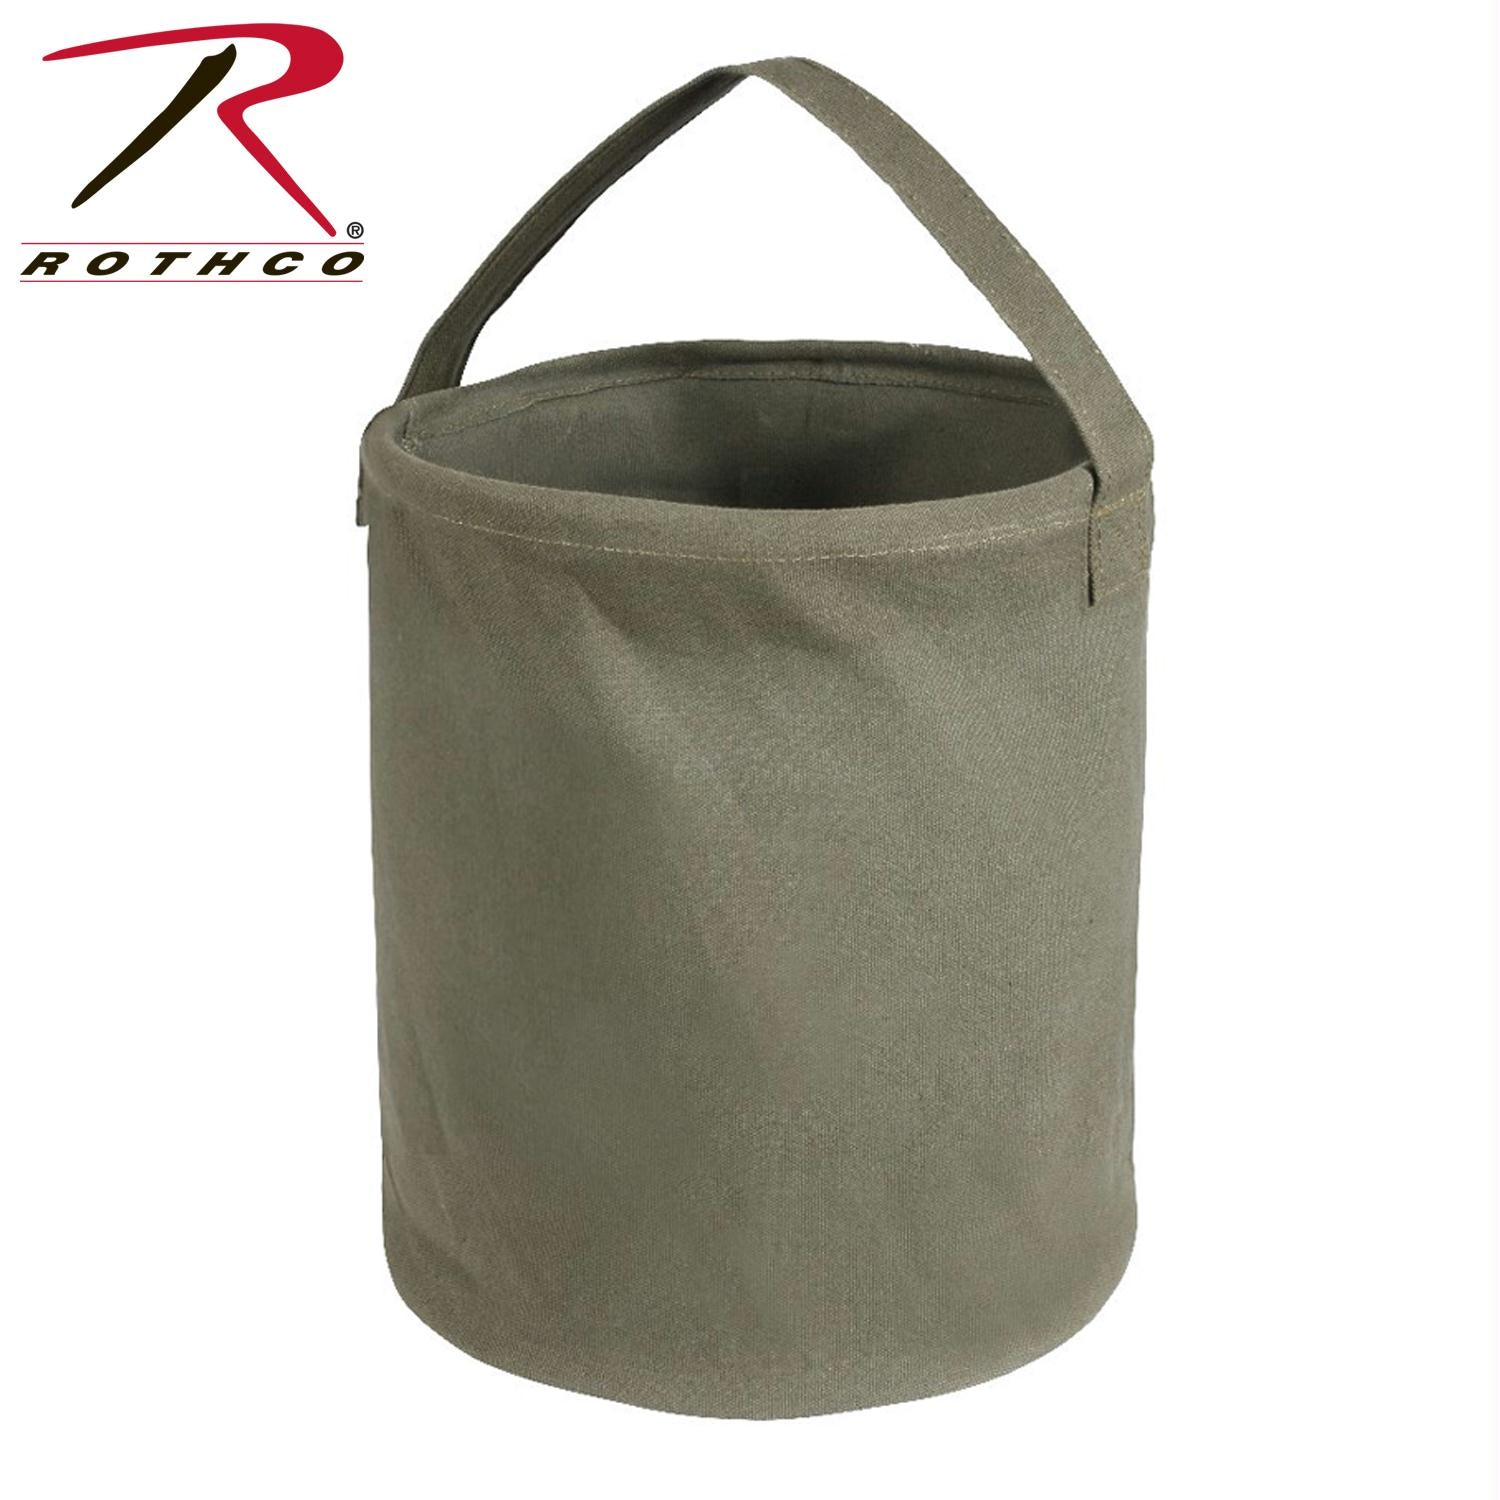 Rothco Canvas Water Bucket - Olive Drab / L